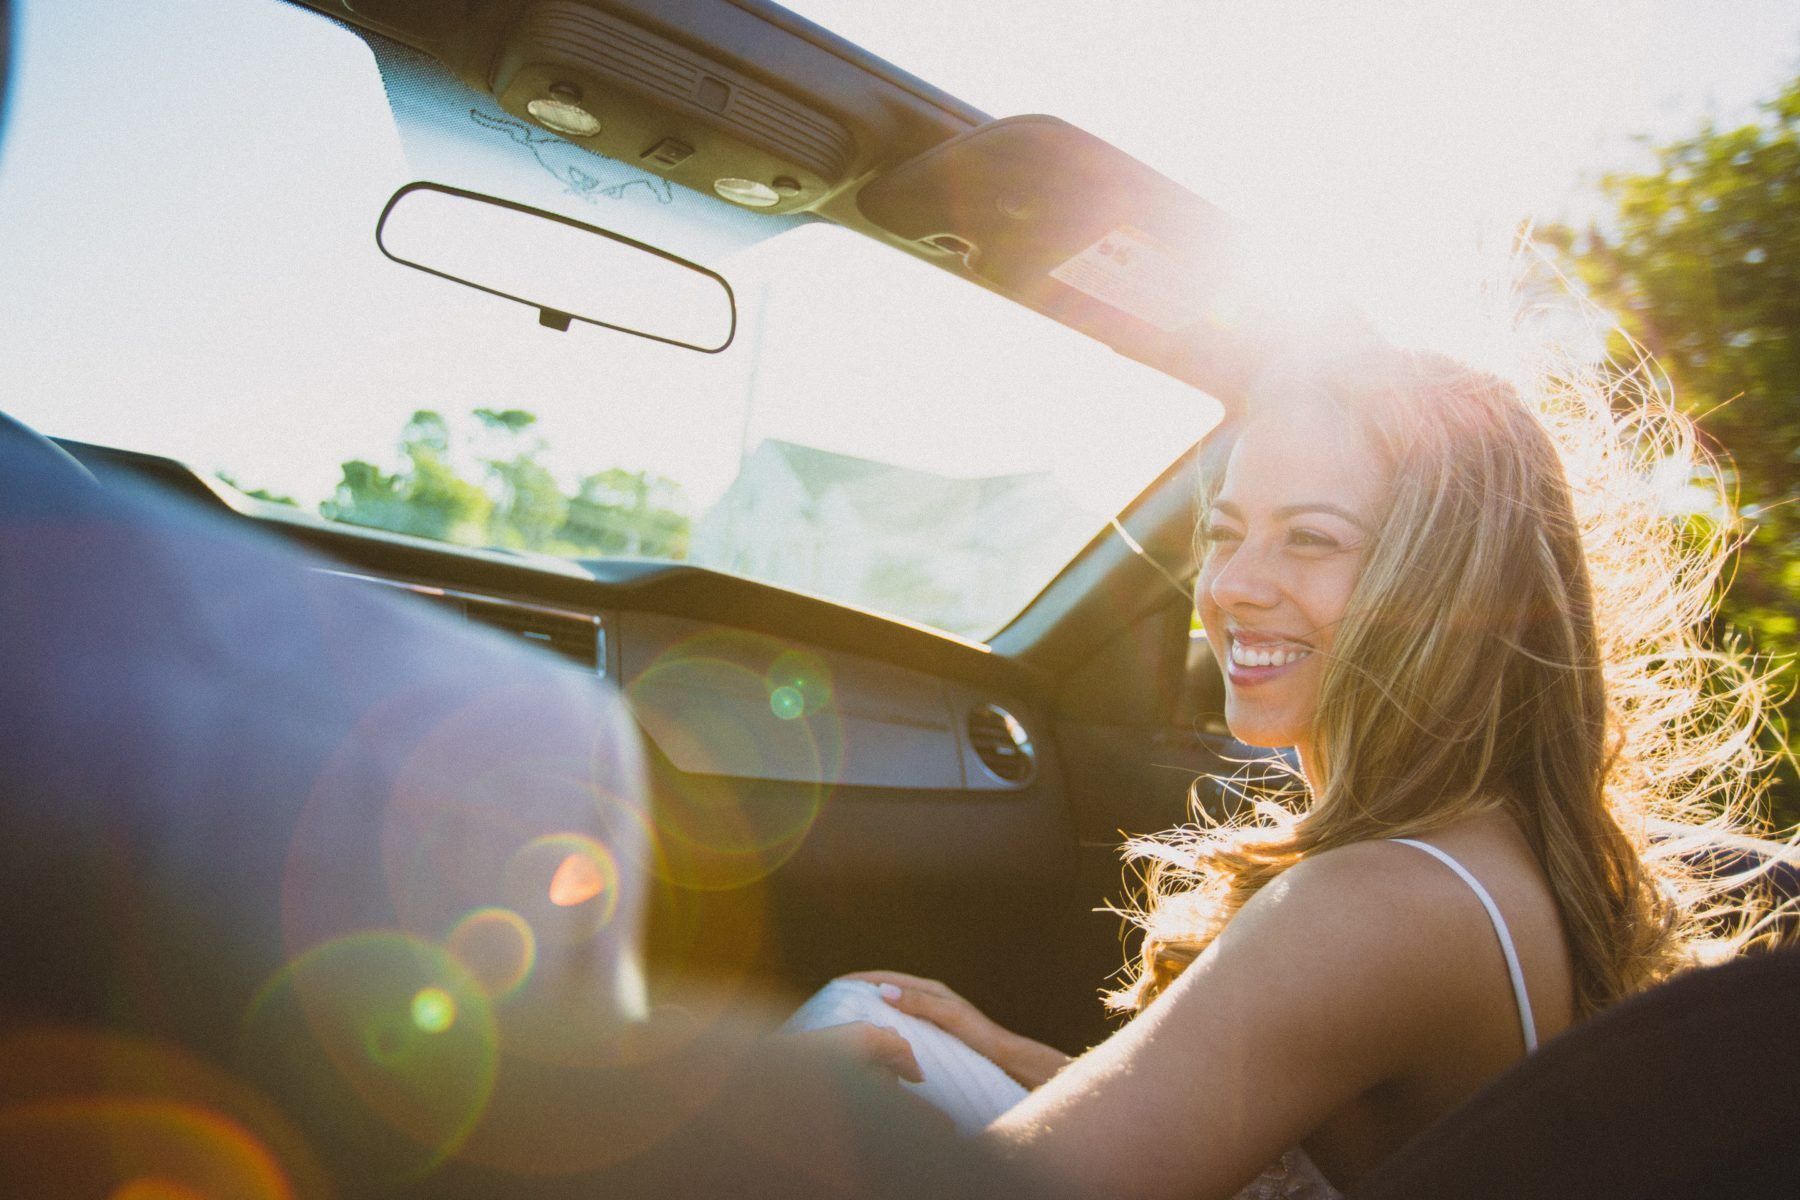 young women smiling while riding in a convertible with top down